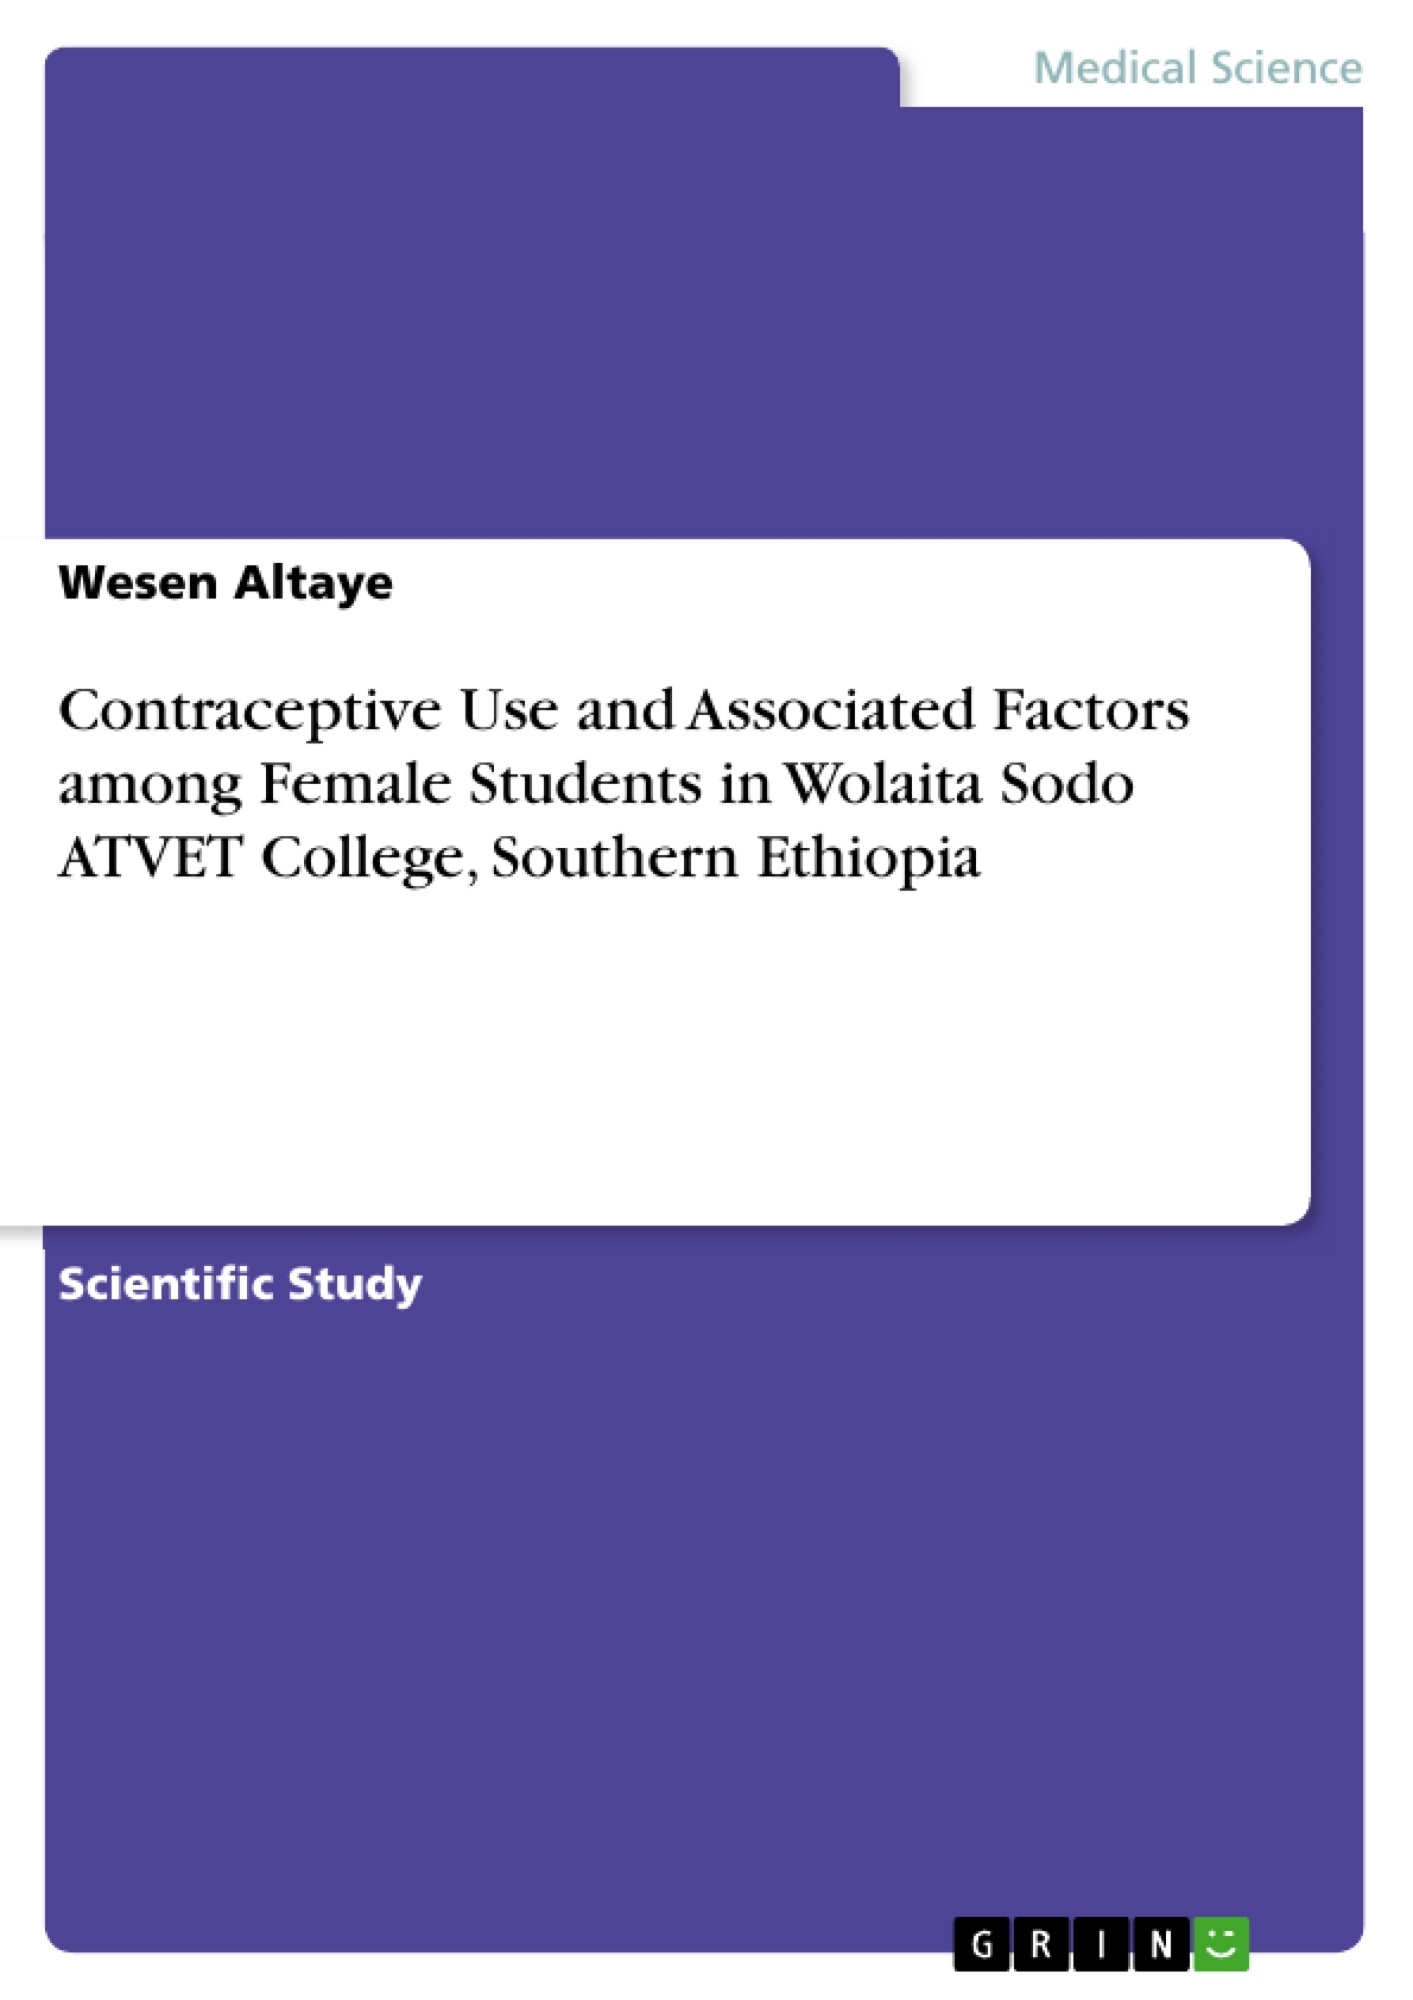 GRIN - Contraceptive Use and Associated Factors among Female Students in  Wolaita Sodo ATVET College, Southern Ethiopia